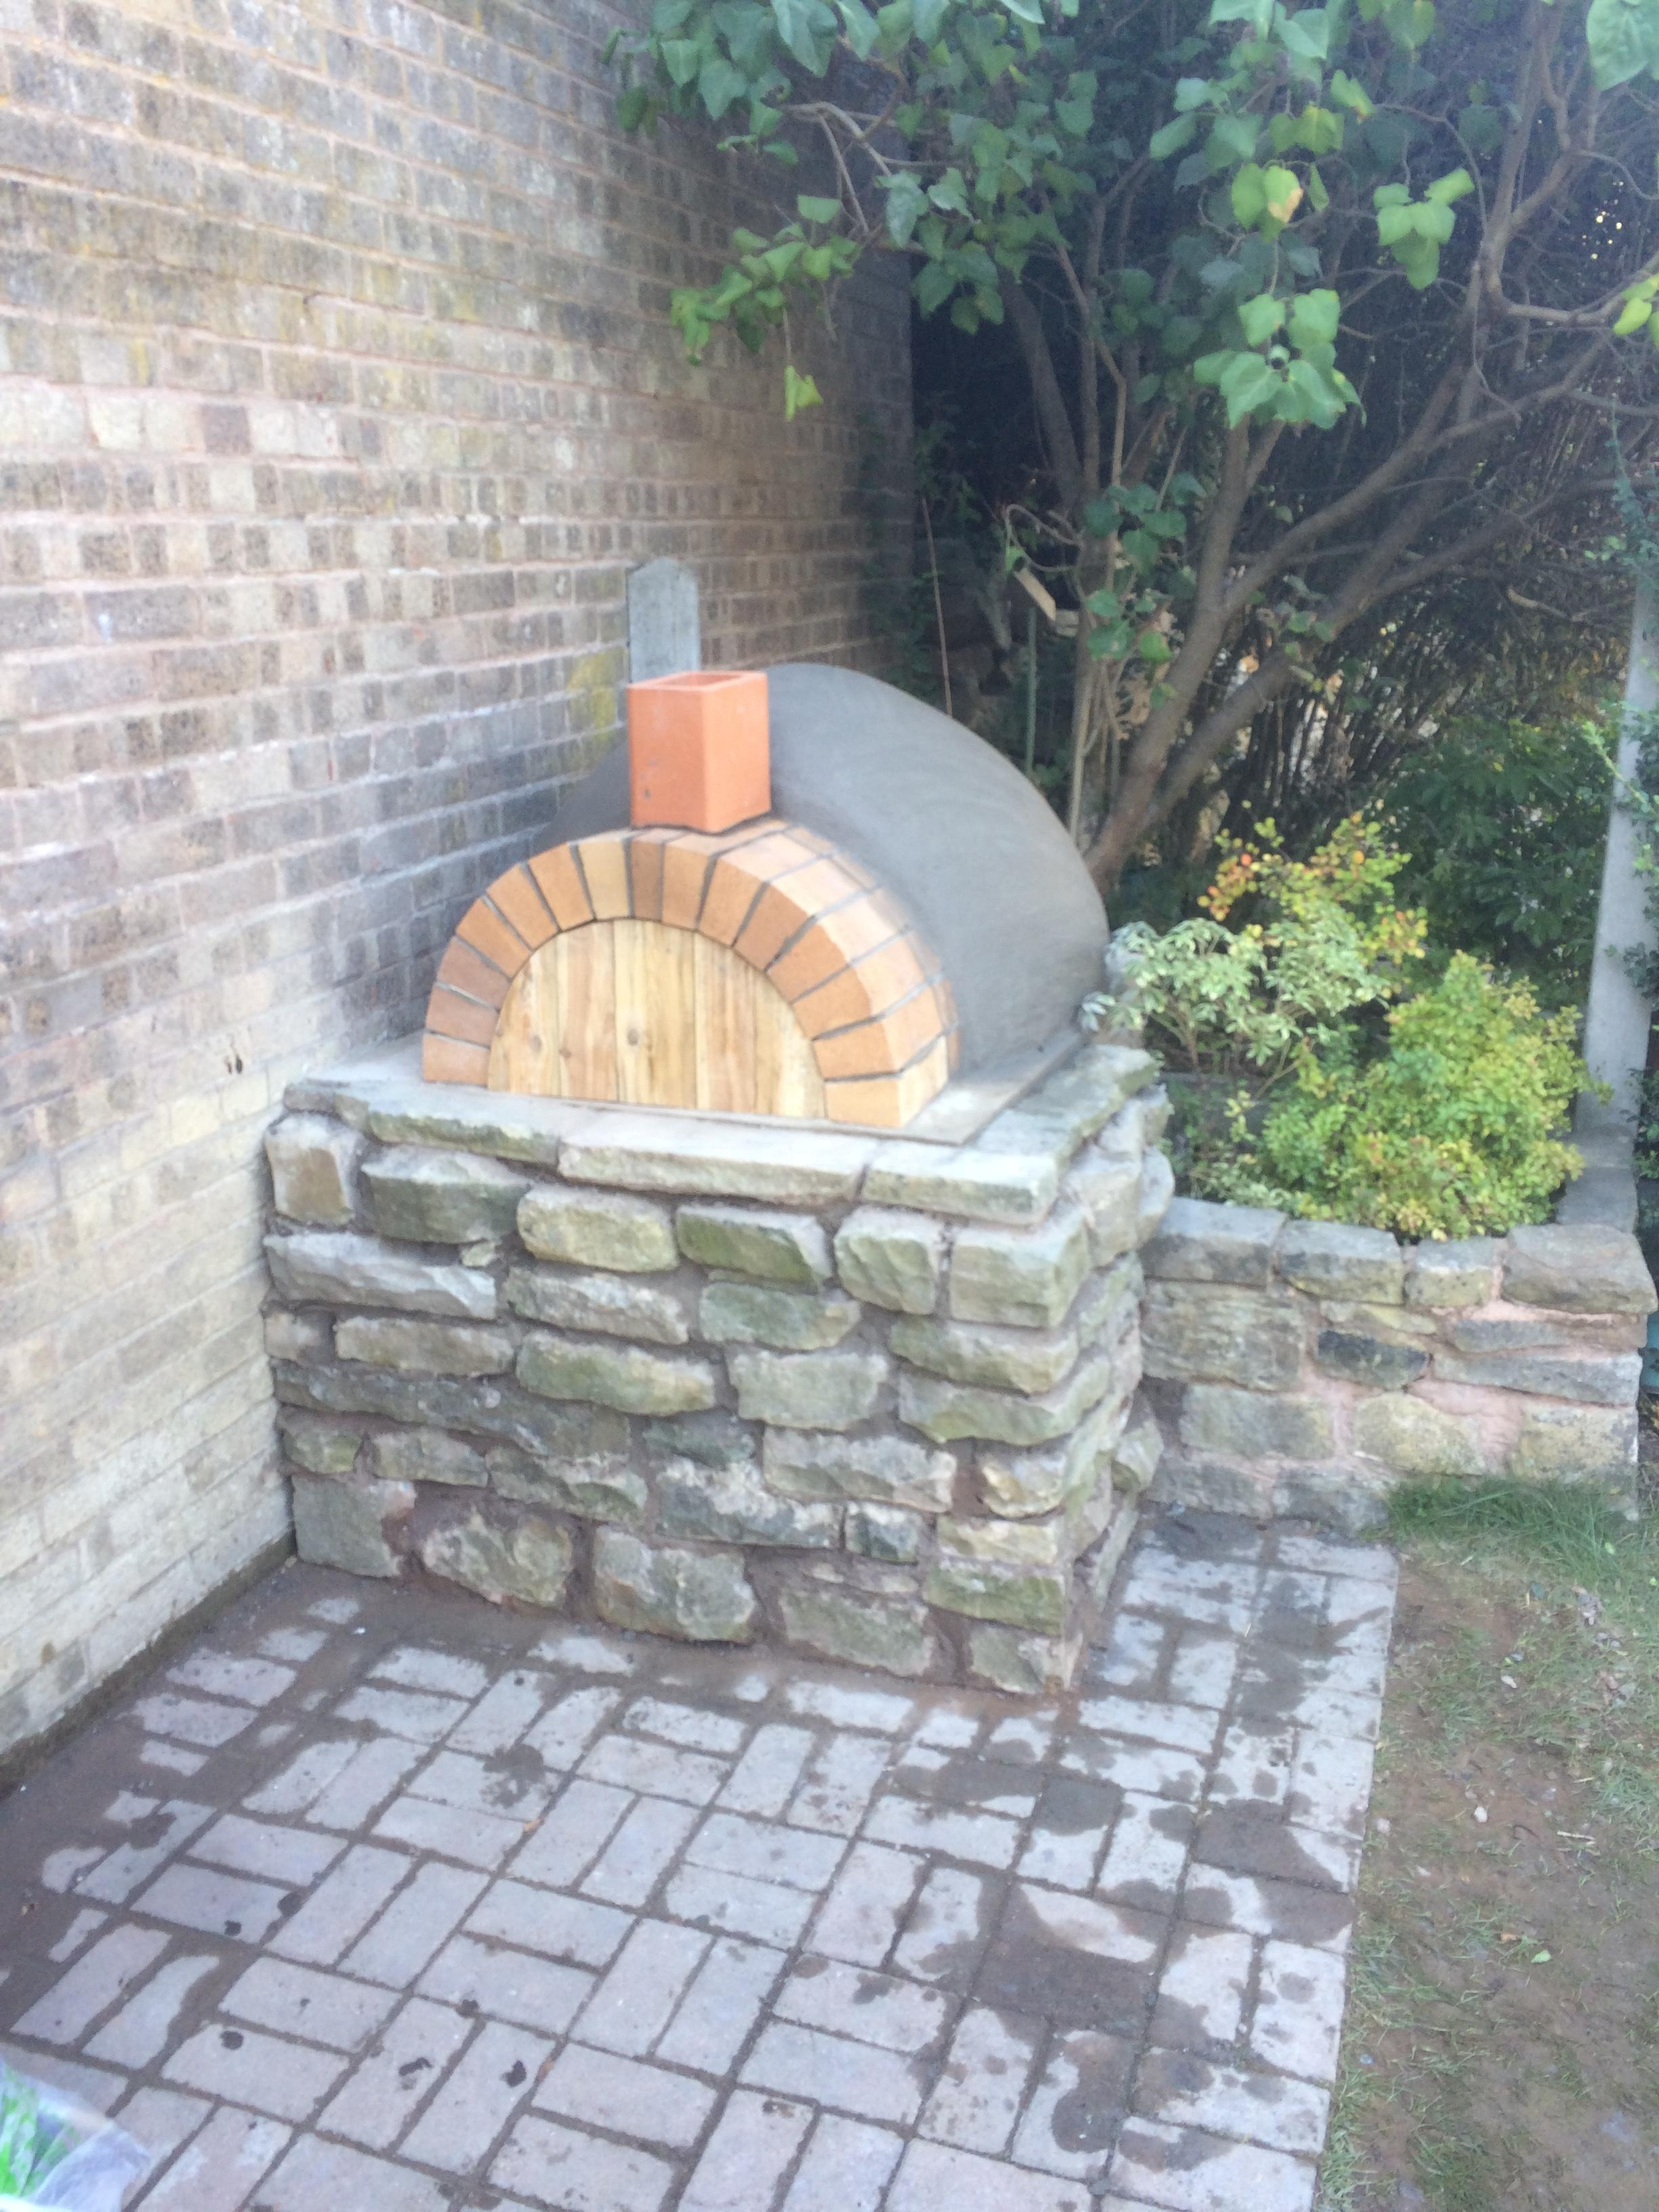 View Larger Image DIY Homemade Outdoor Brick Pizza Oven | Step By Step Guide